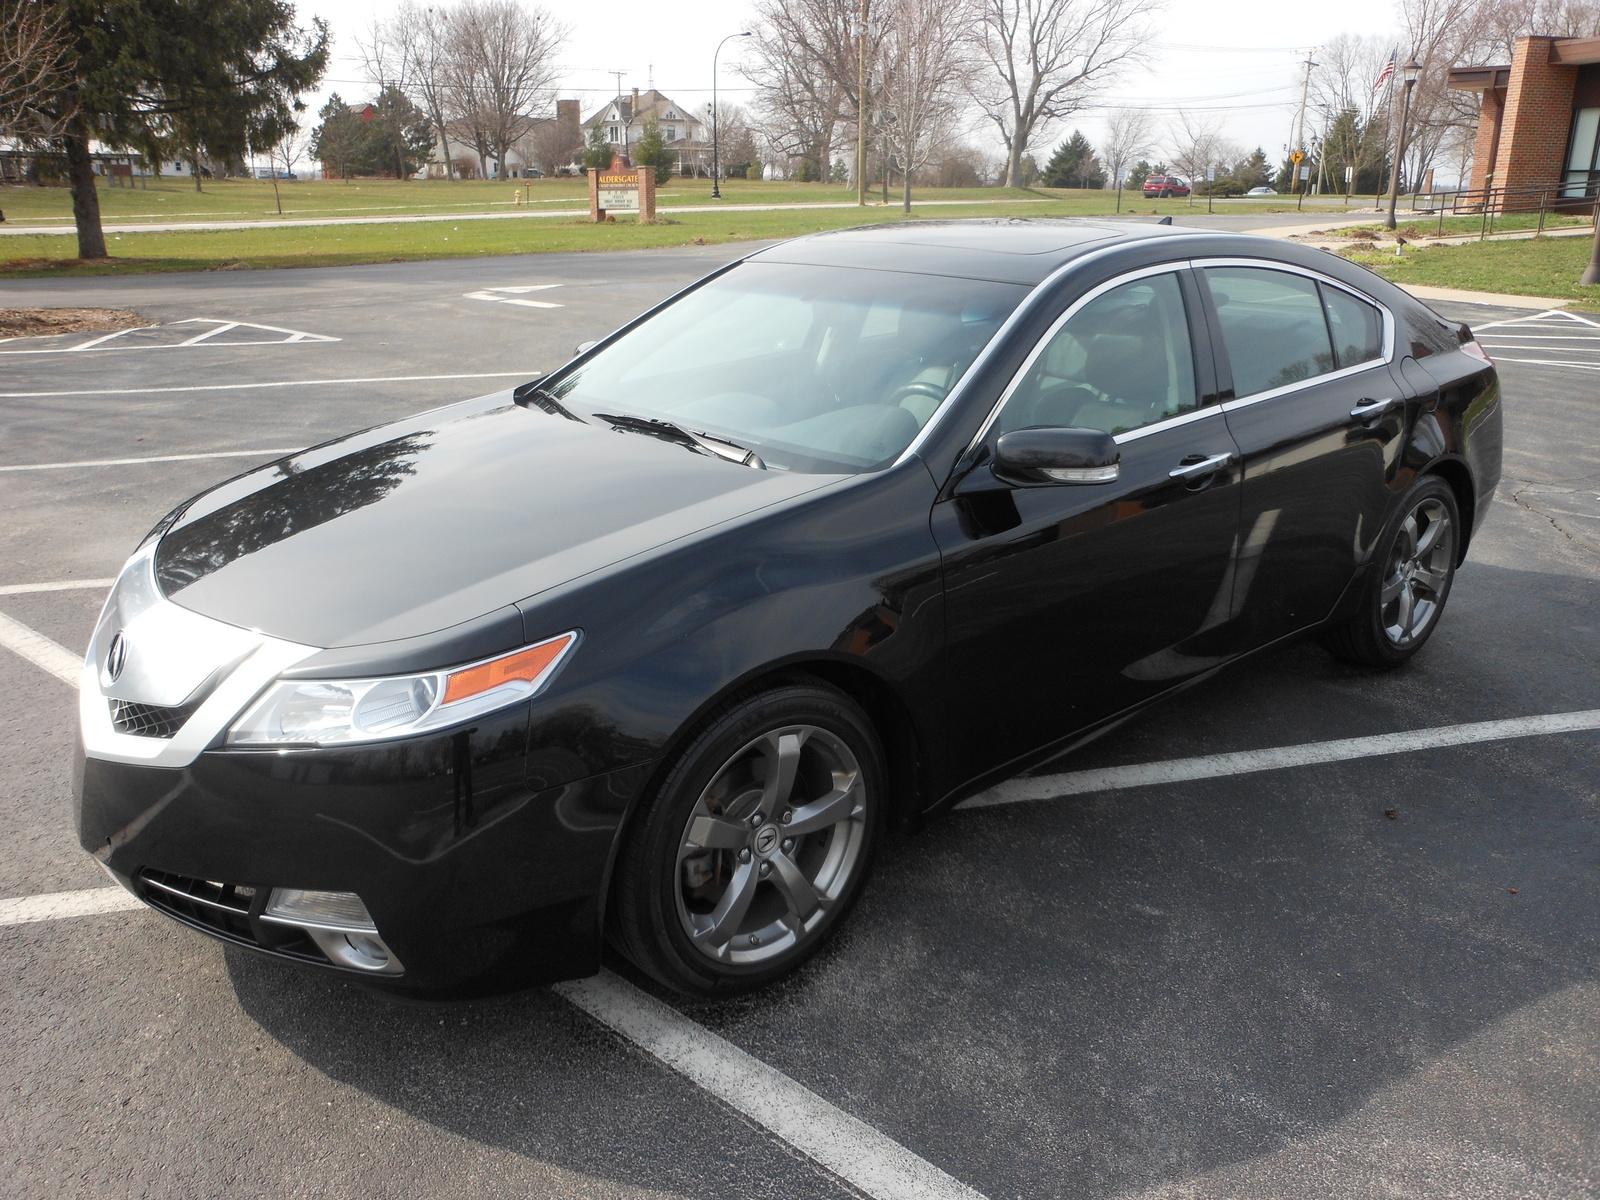 2016 Honda Civic Renders moreover 2010 Acura Tl Pictures C21849 pi36211896 furthermore 14 together with Breaching Firewall 734282 furthermore 1984 Rover 3500. on 2004 acura tsx